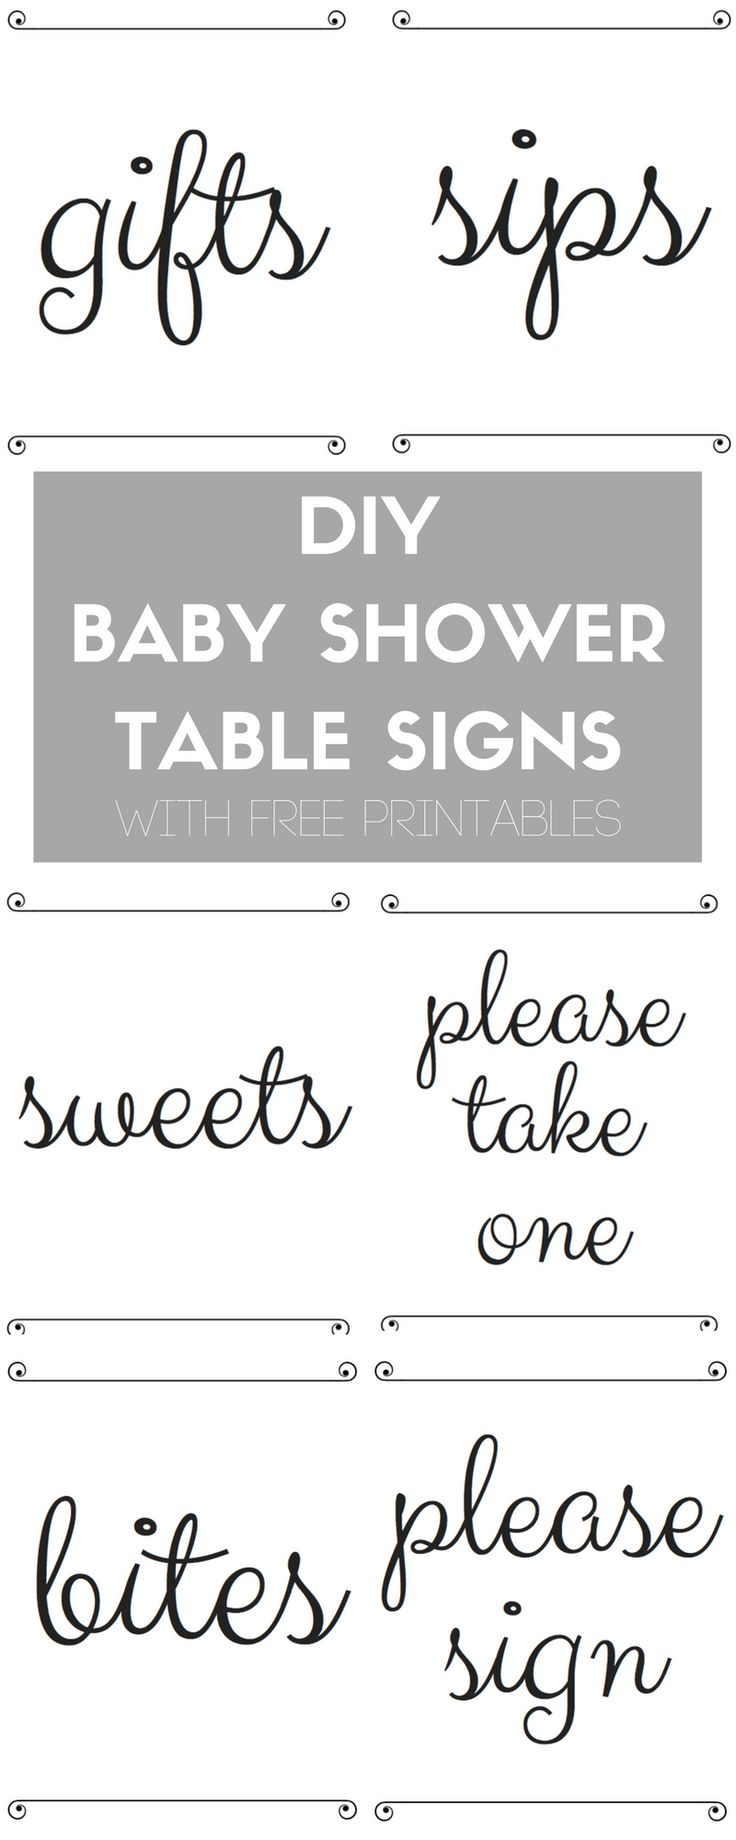 DIY BABY SHOWER TABLE SIGNS FREE PRINTABLE #ad #superabsorbent